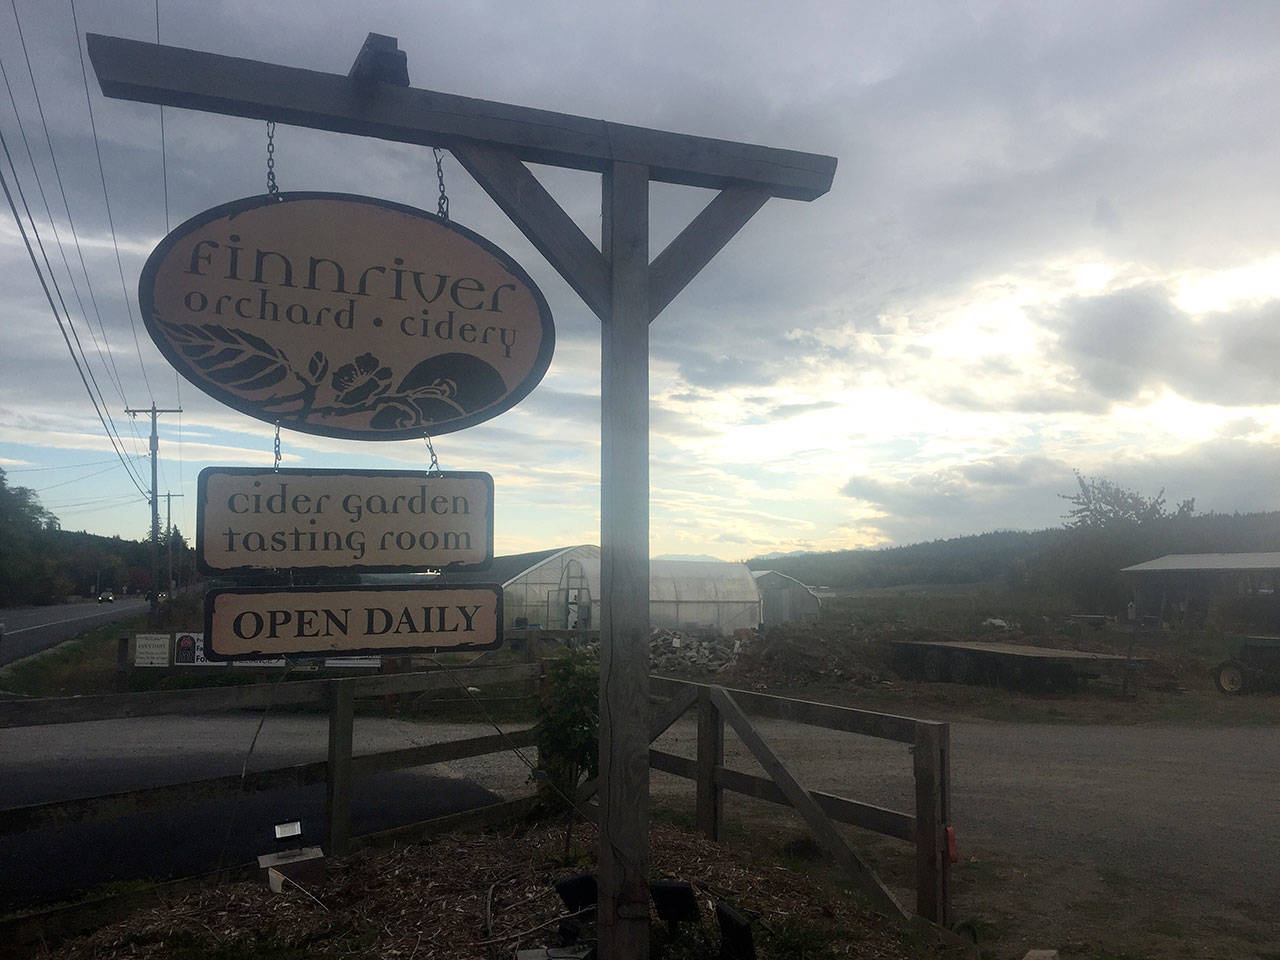 Finnriver Cidery, orchards and a number of other local organizations work on 50 acres of protected farmland. (Cydney McFarland/Peninsula Daily News)